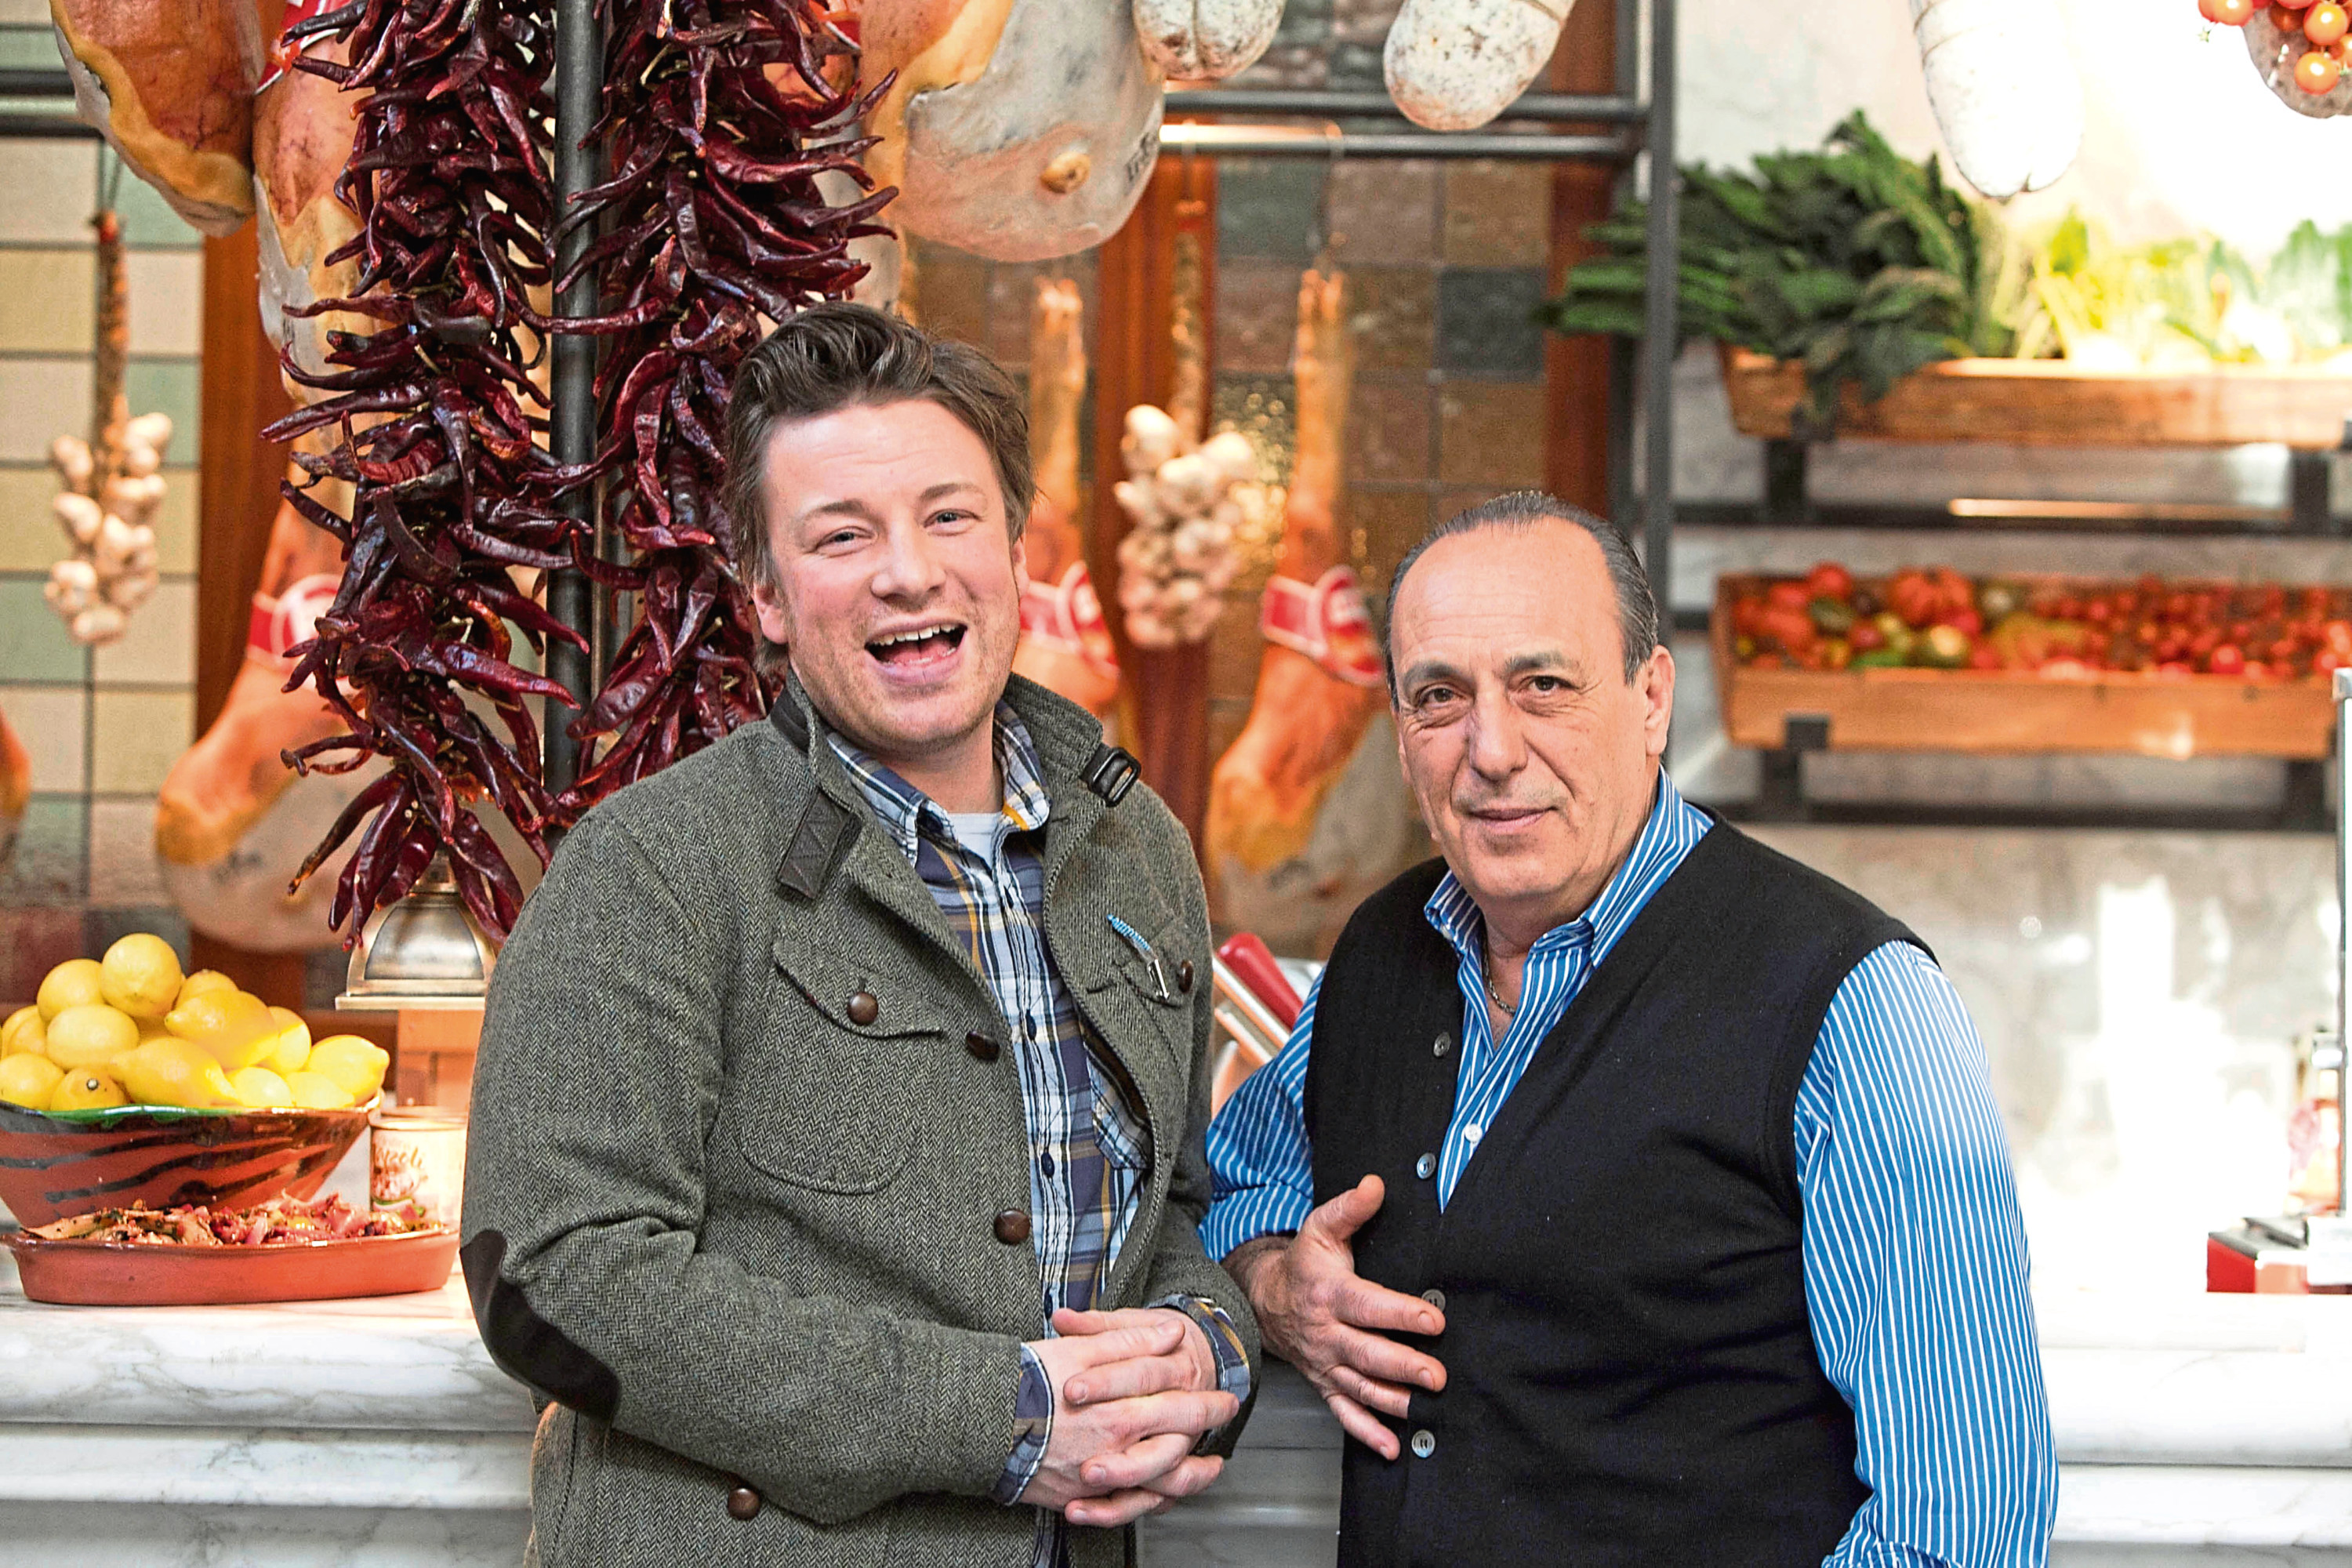 Gennaro Contaldo, right, with fellow chef and friend Jamie Oliver